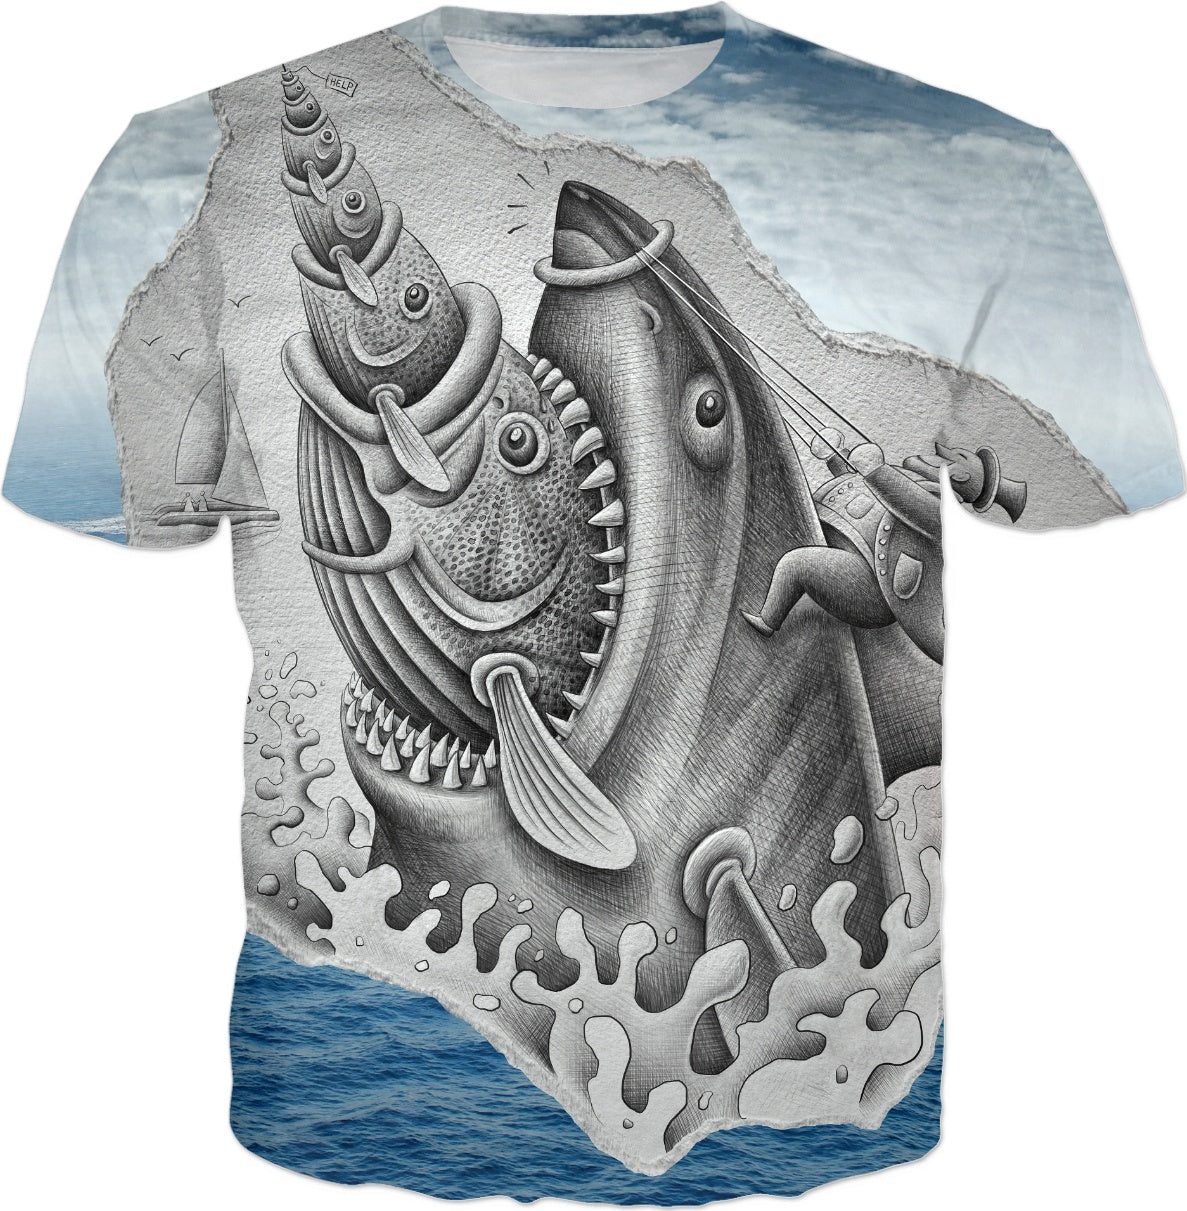 Pencil Vs Camera - Shark T-shirts and Clothes